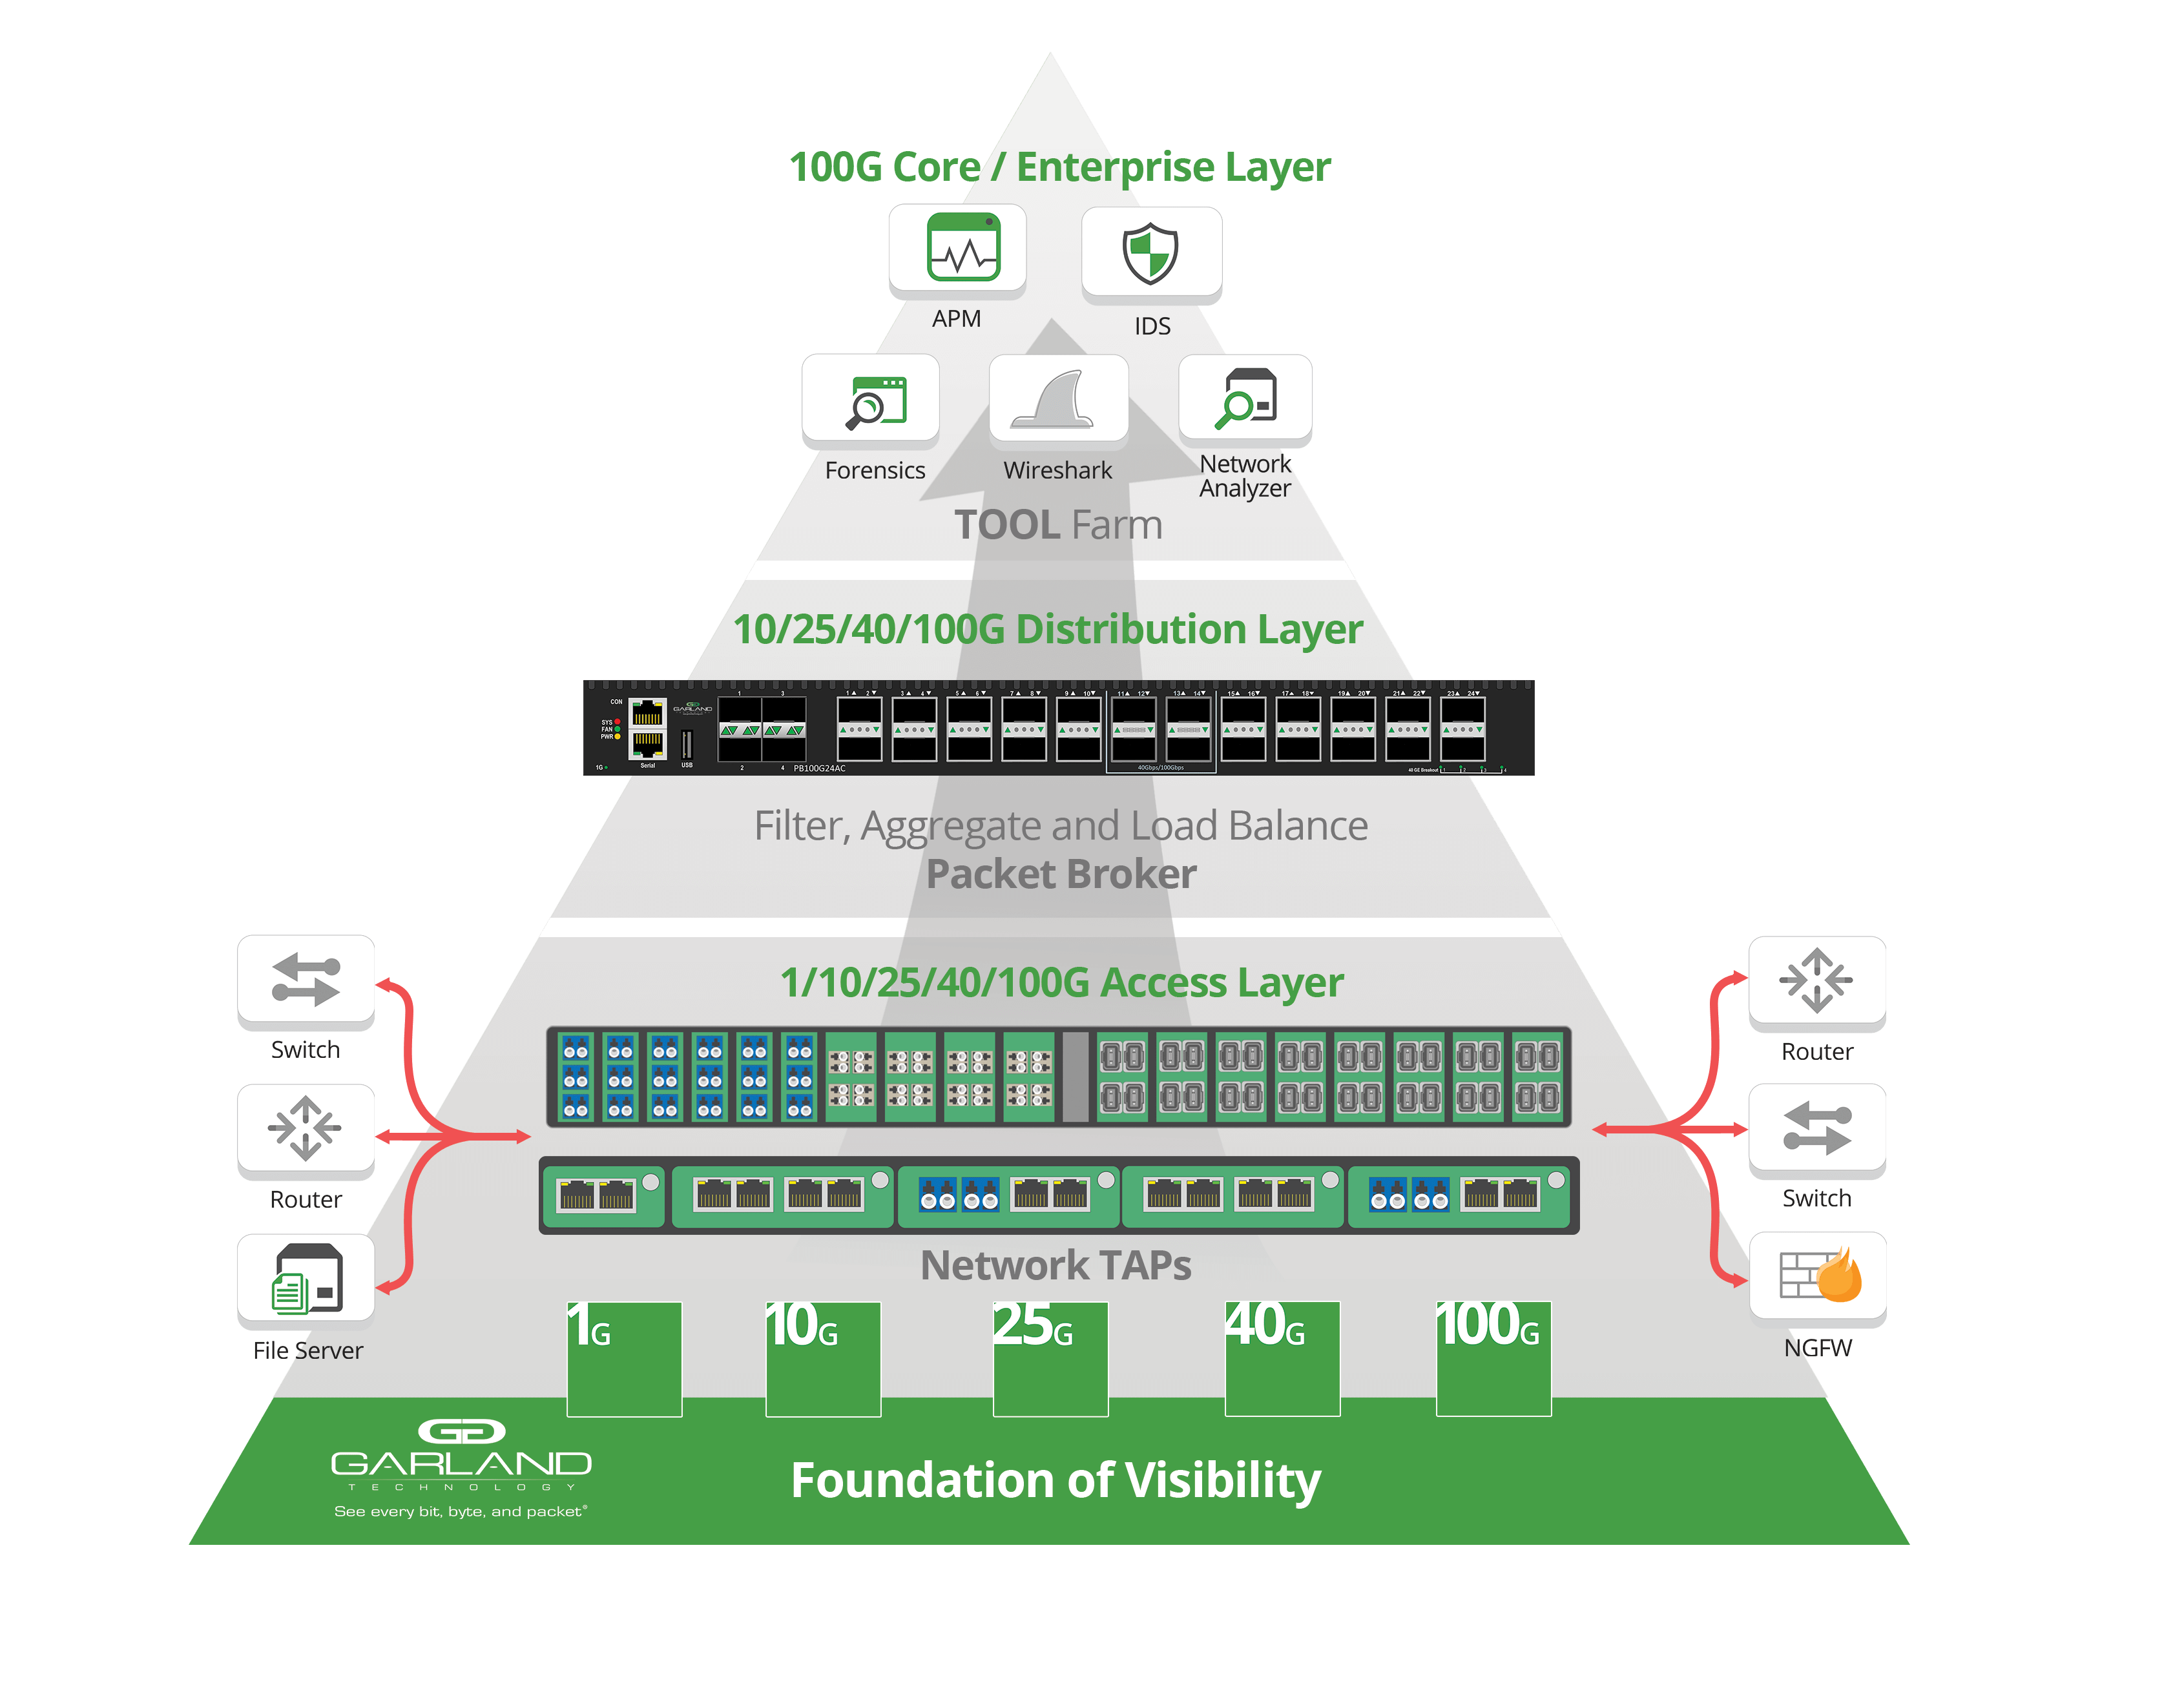 Network Visibility Hierarchy Pyramid